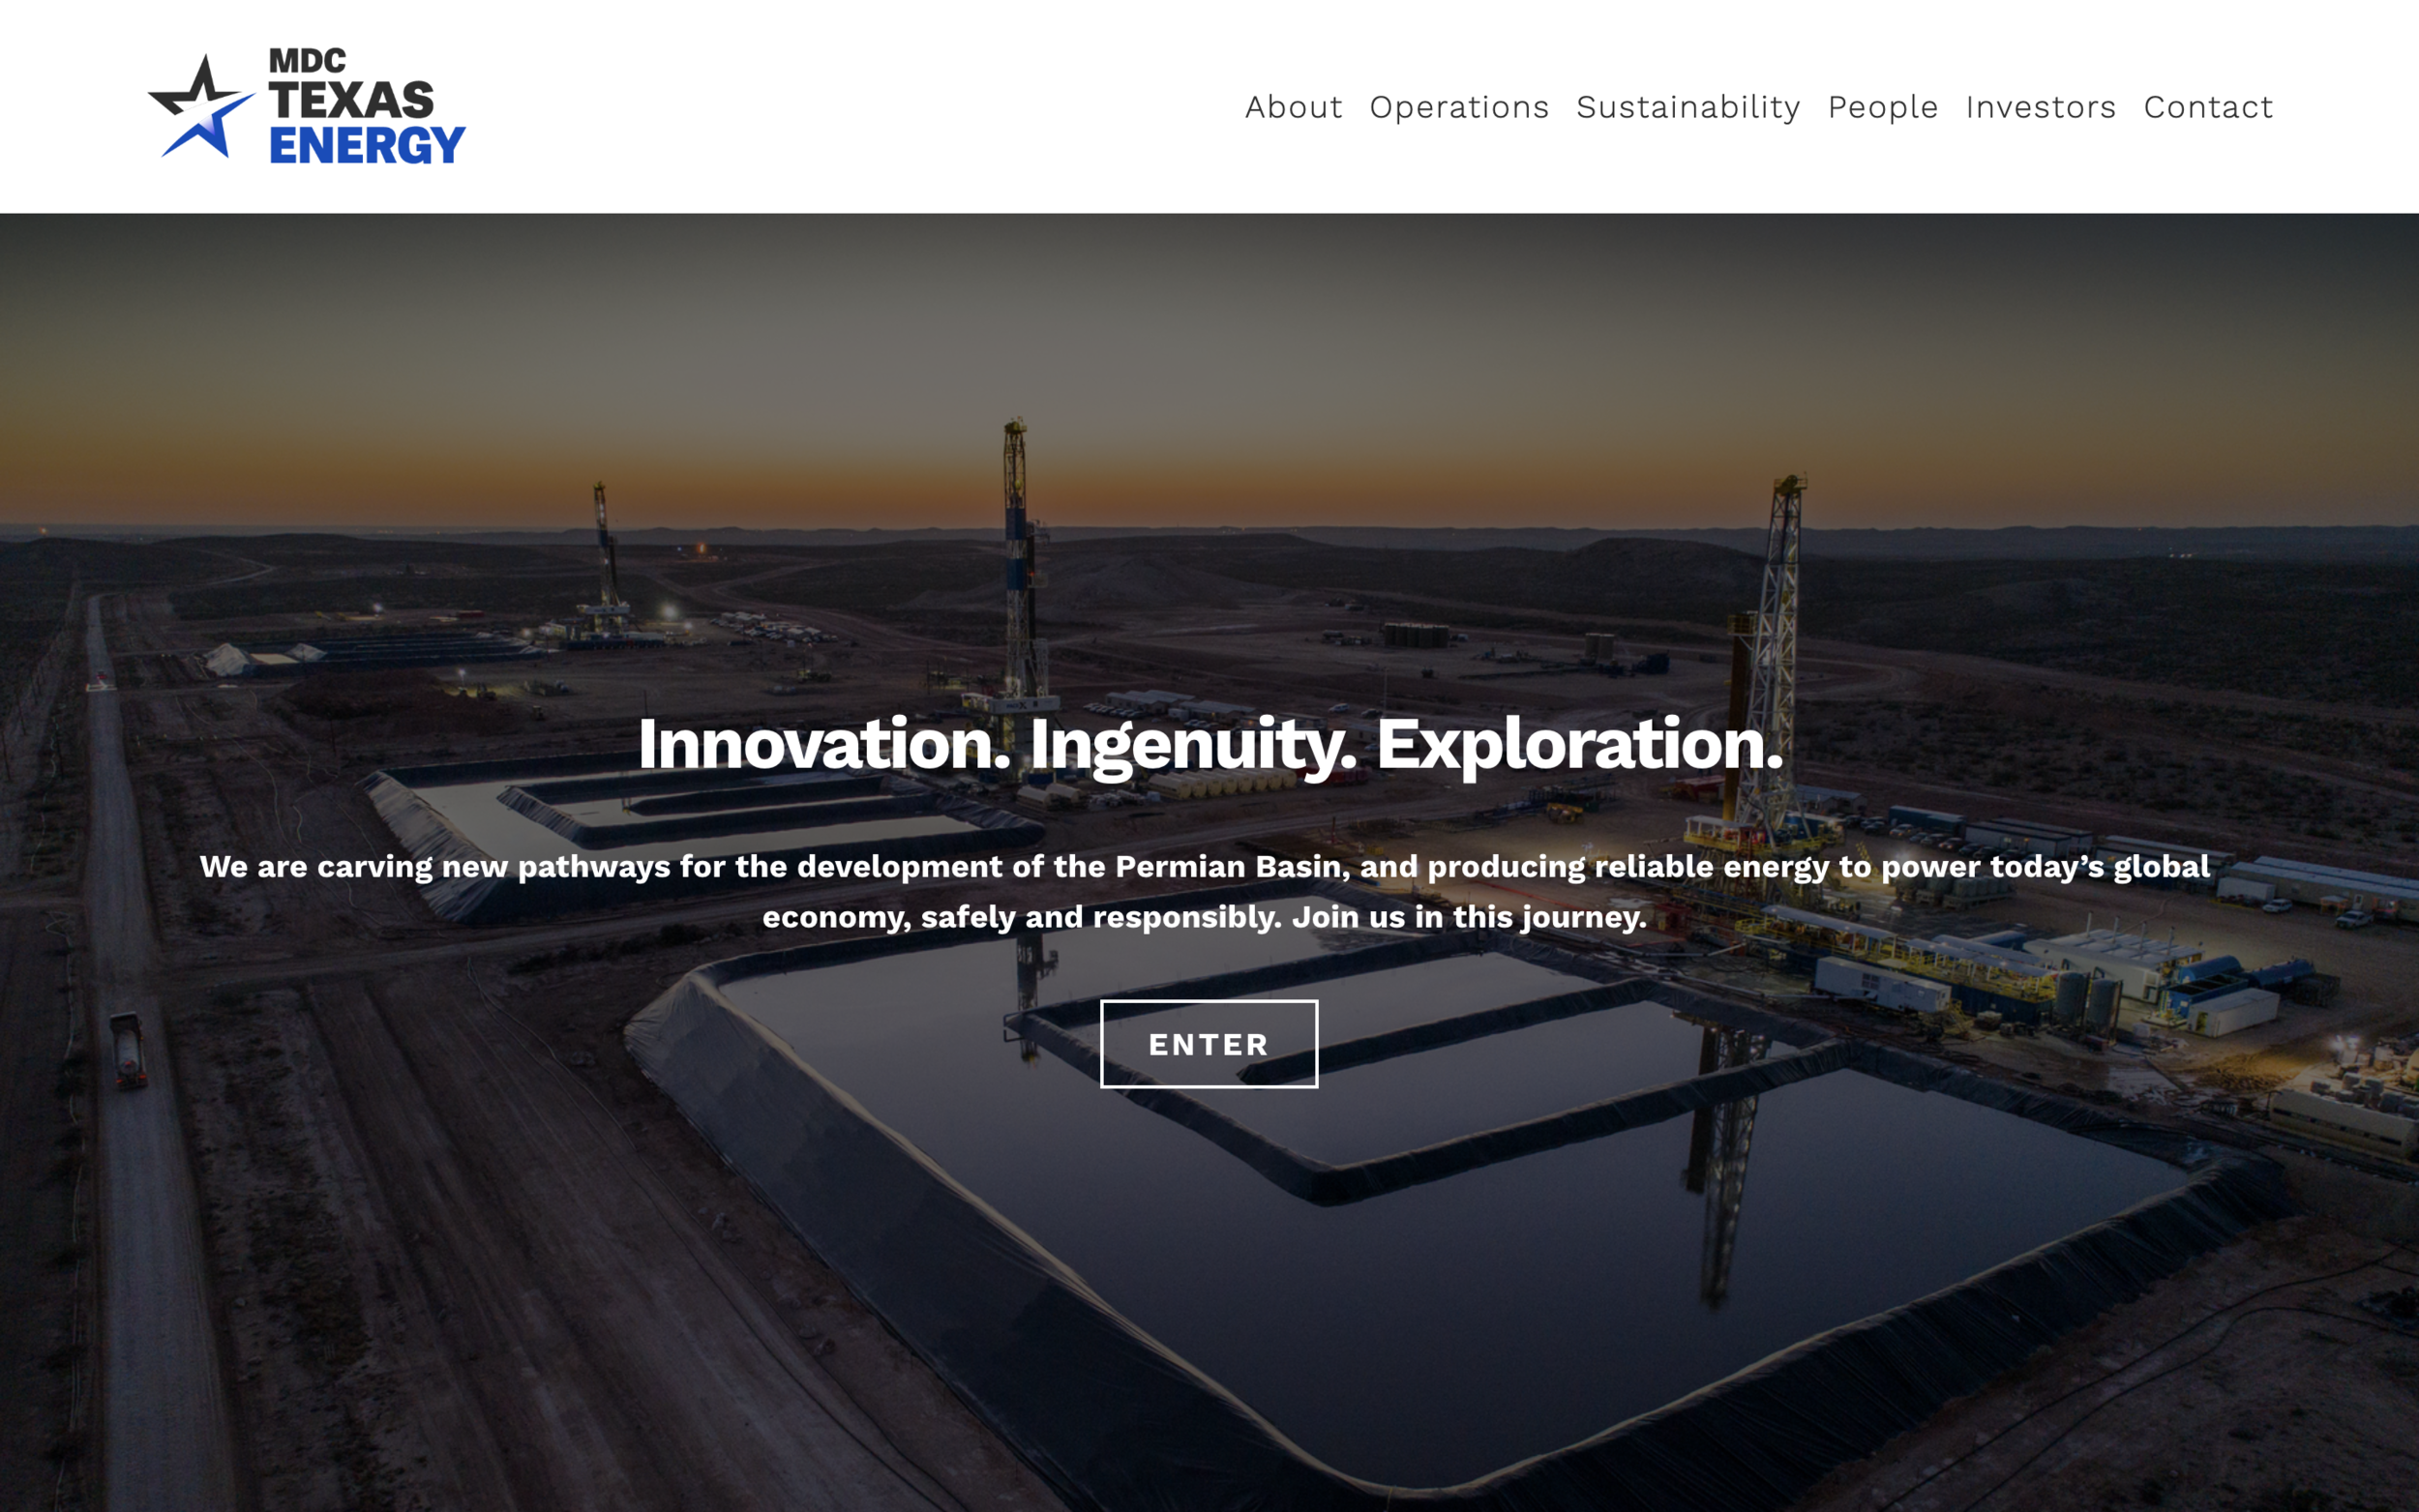 mdctexasenergy.net - Beautiful Squarespace Website DesignProducing reliable sources of energy is important for our economy. This fullwidth Squarespace website demands the users attention and is a great example of a responsive Squarespace website.